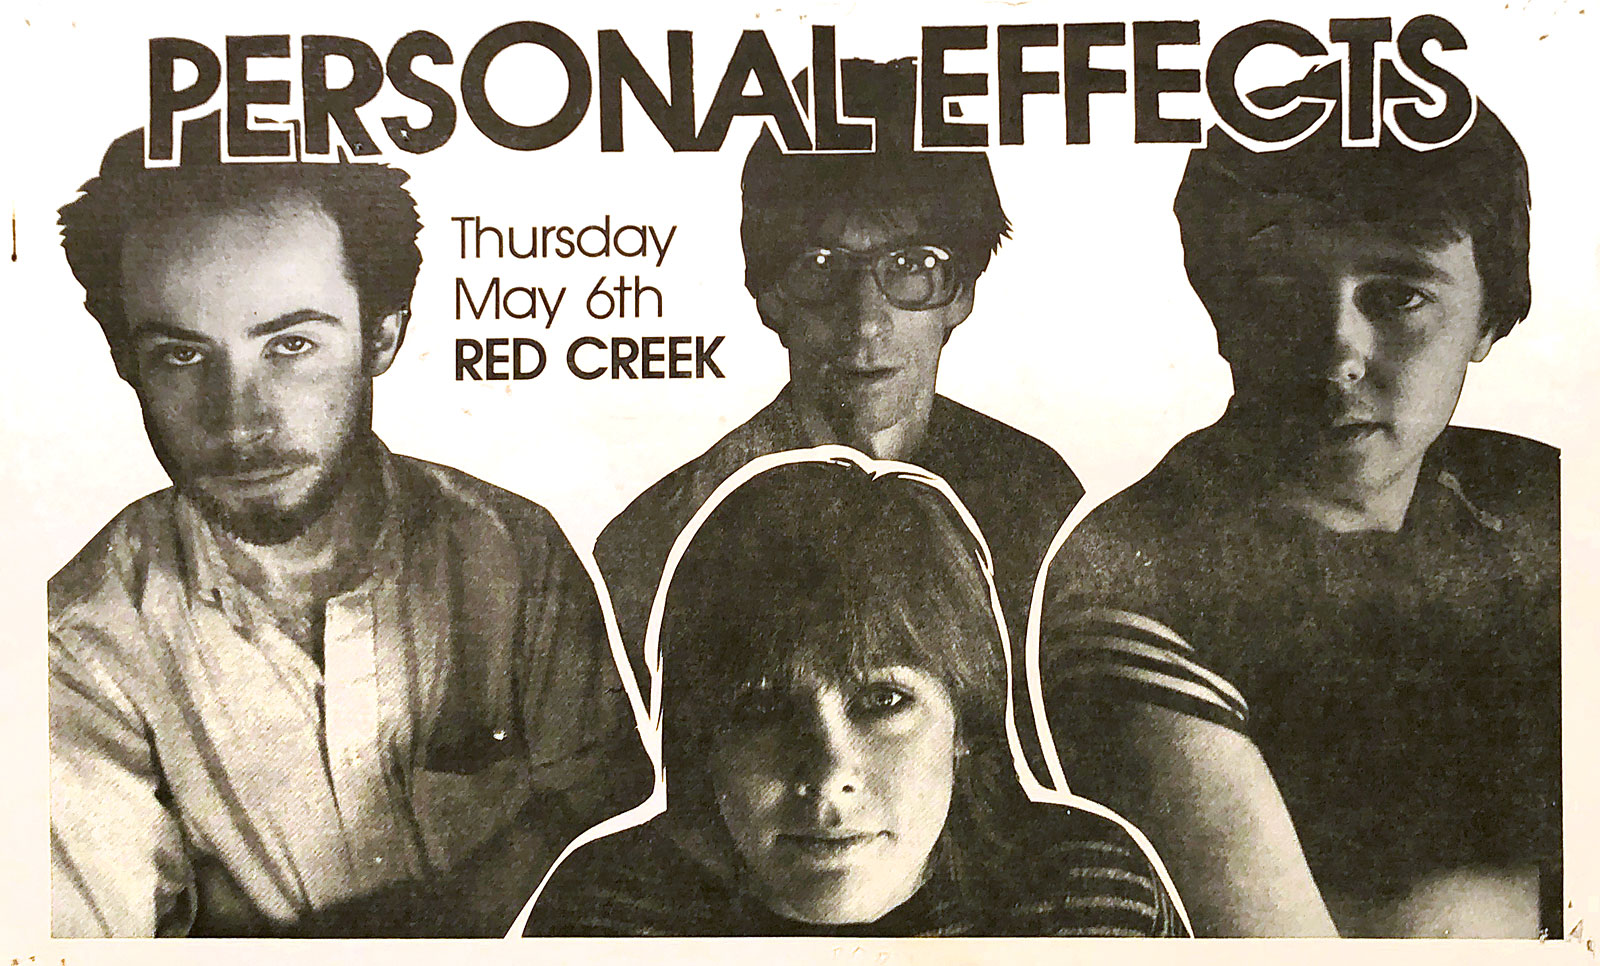 Poster for Personal Effects at Red Creek in Rochester, New York on 04.06.1982